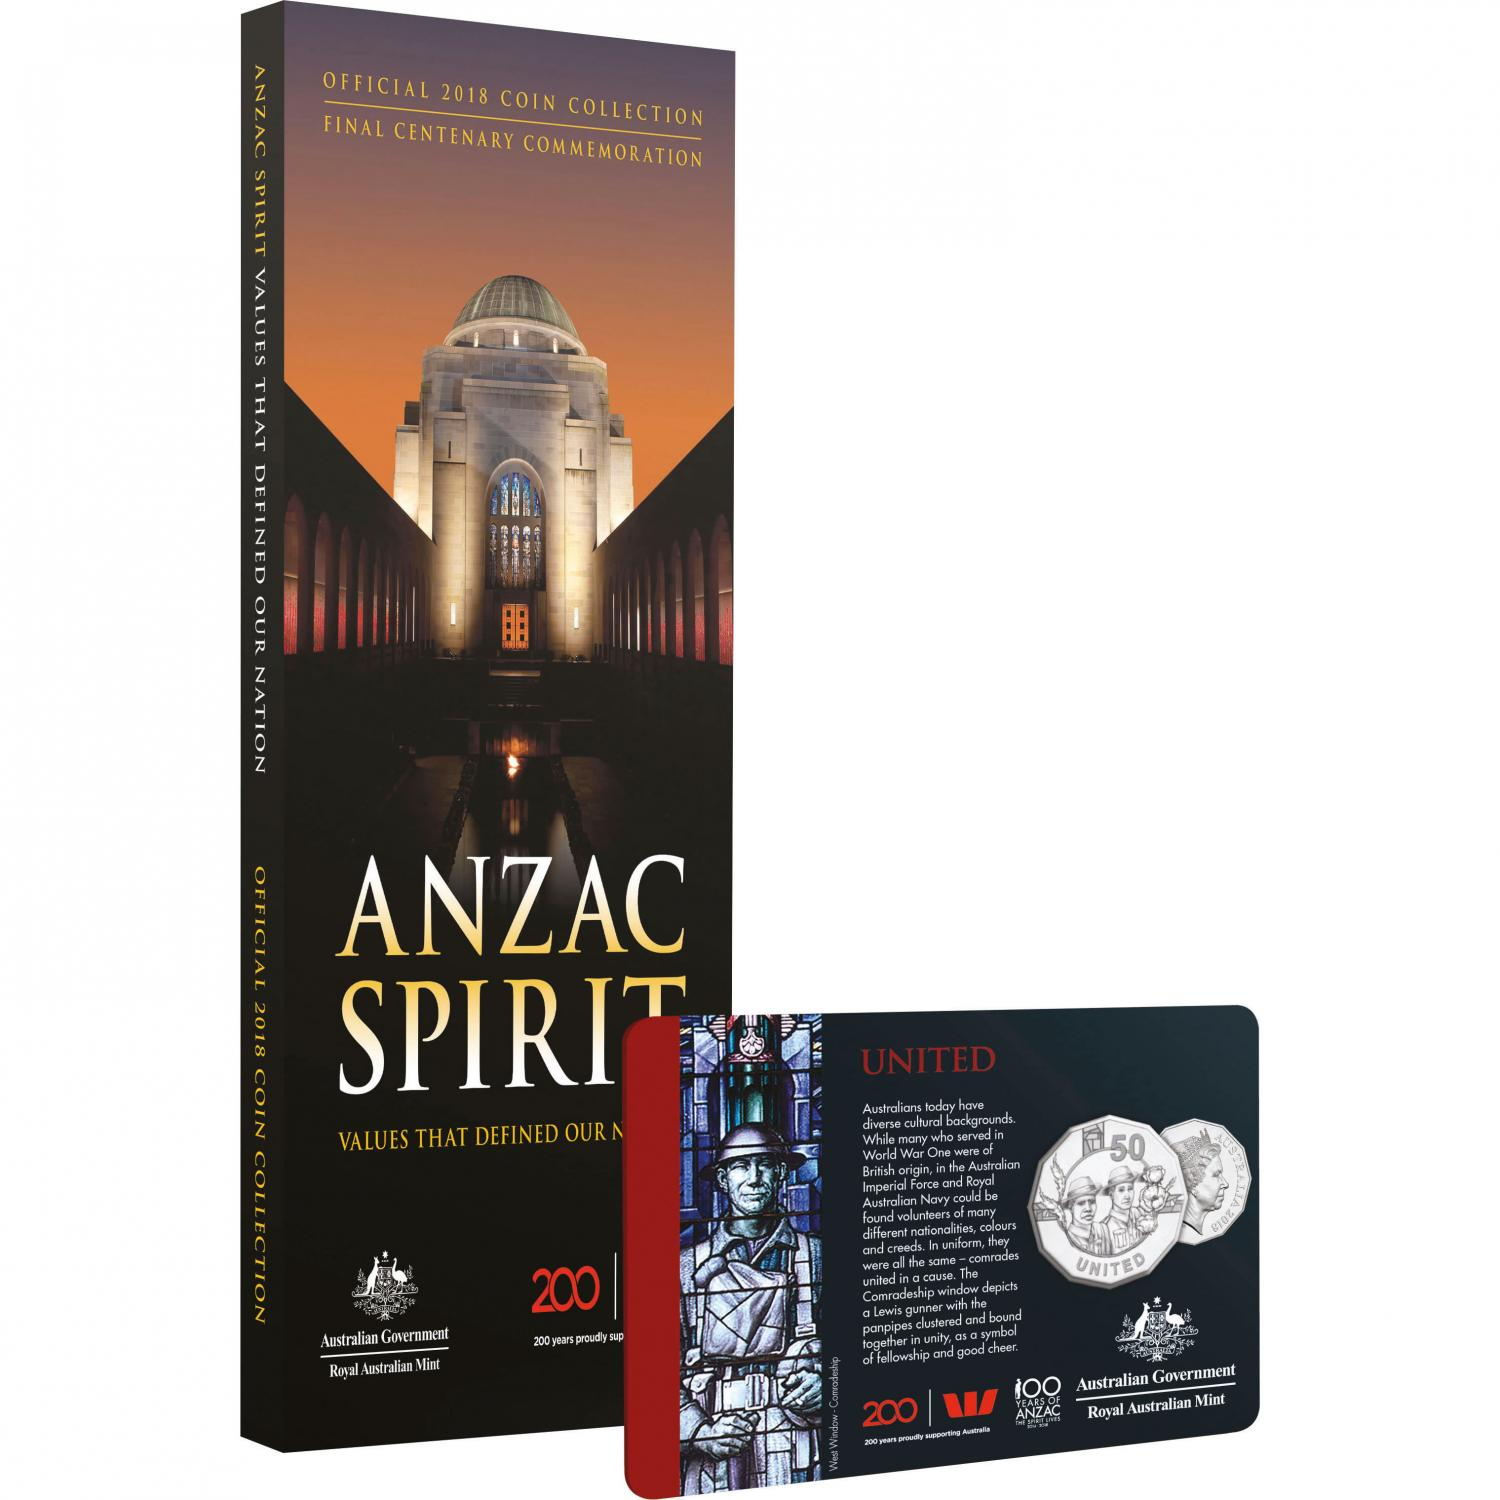 Thumbnail for 2018 Official Coin Collection Final Centenary Commemoration - Anzac Spirit